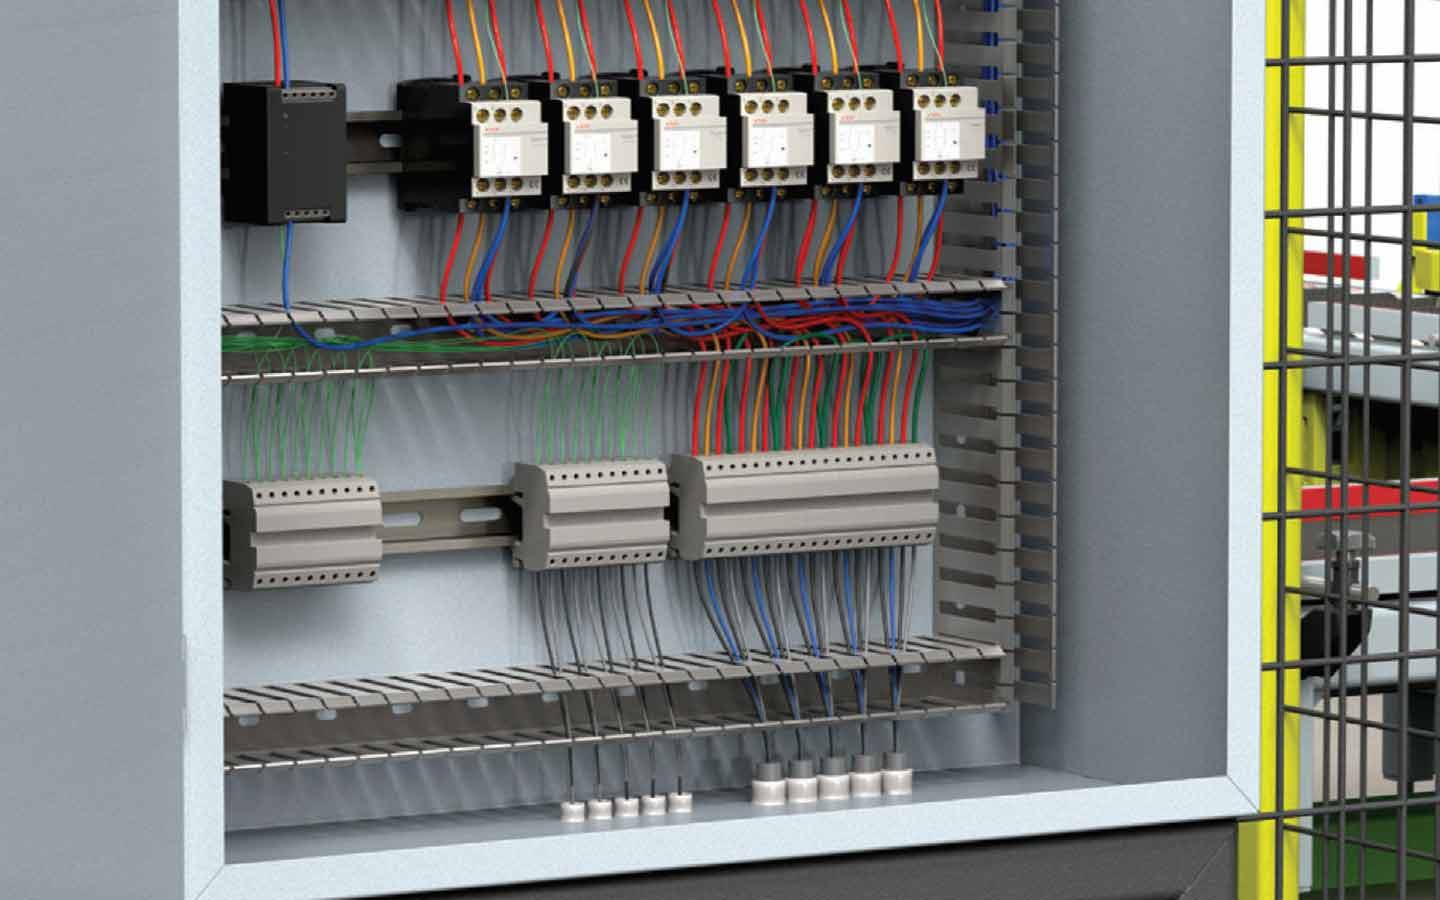 wiring harness design software solidprofessor solidworks electrical 3d training  solidprofessor solidworks electrical 3d training